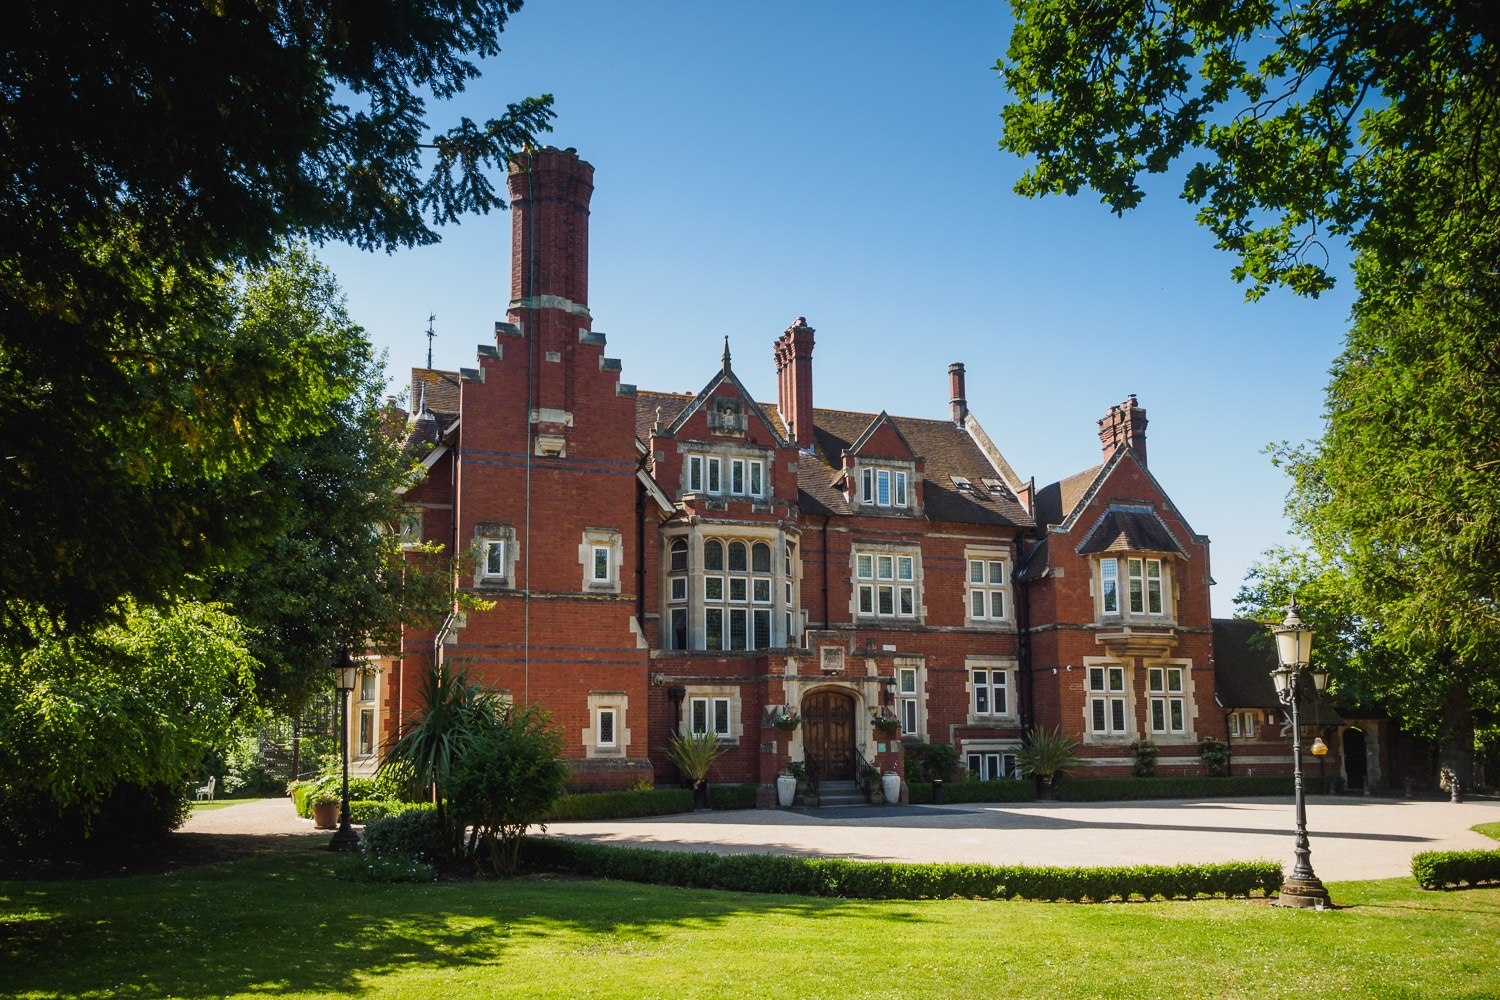 Photograph of Berwick Lodge which is a stunning wedding venue on the edge of Bristol